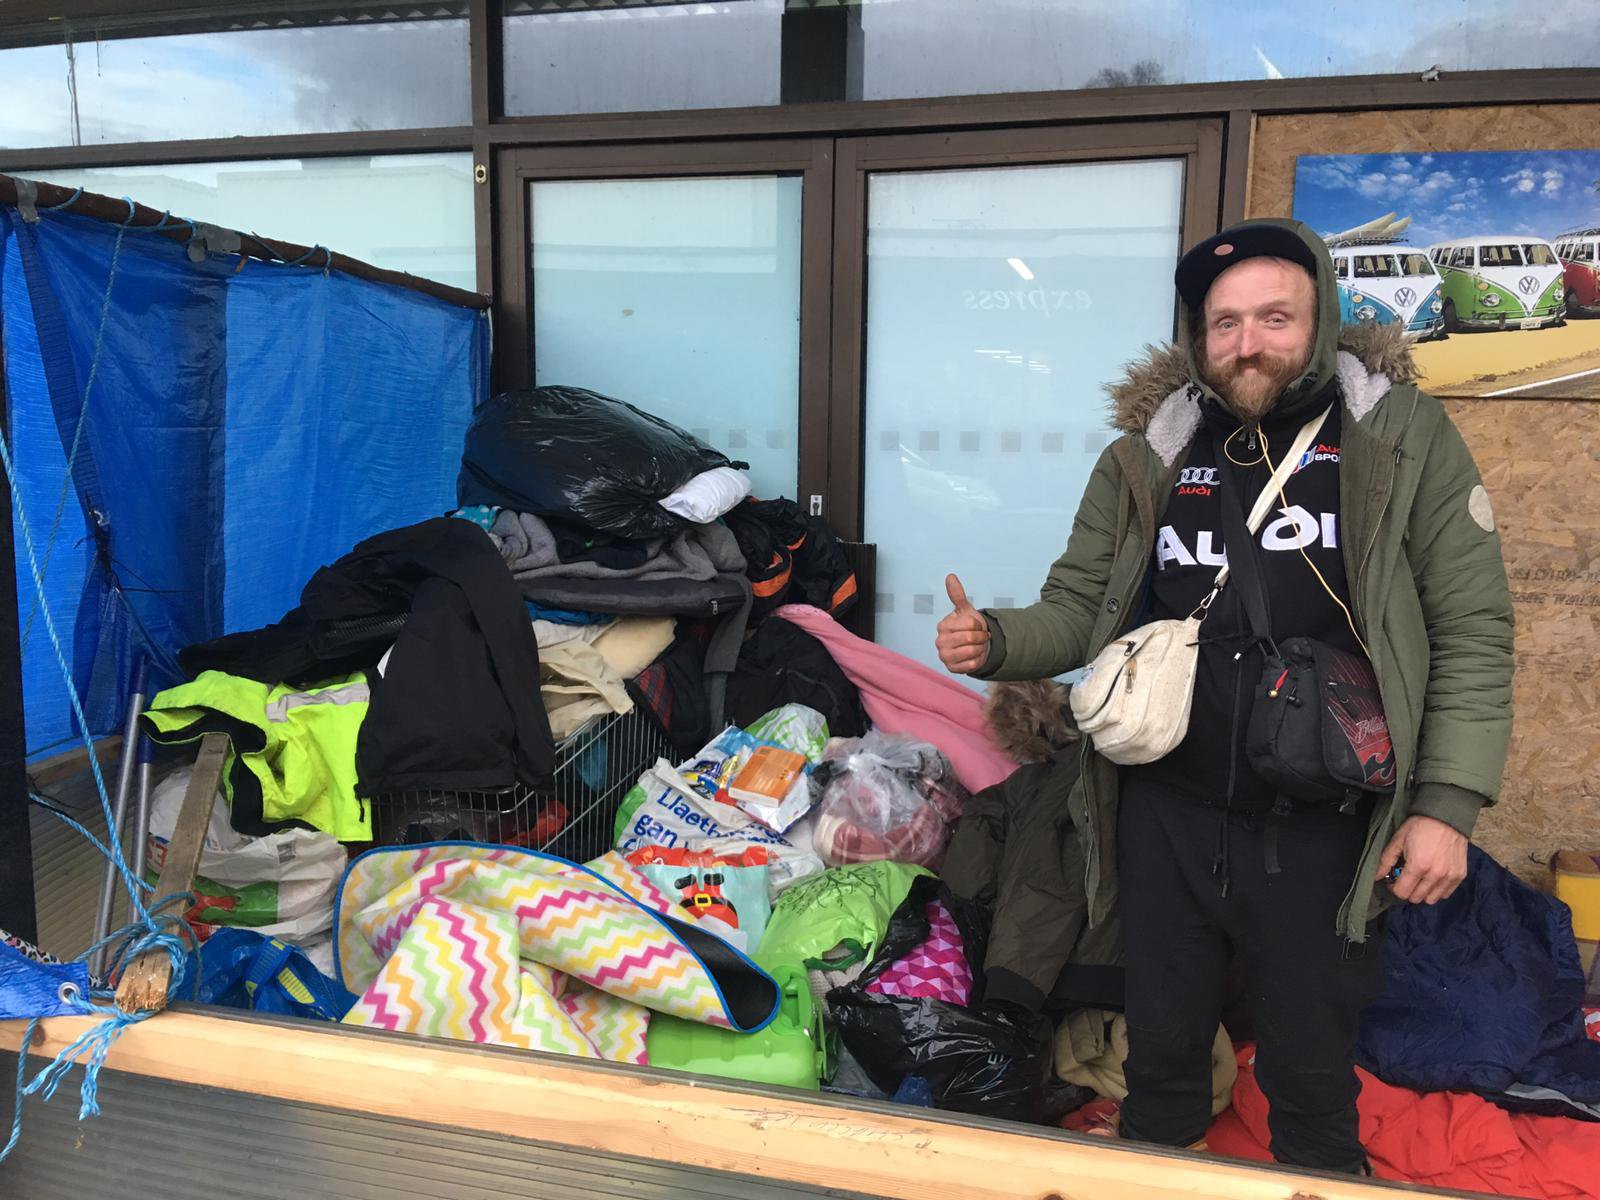 A homeless man who lived in a wooden shelter by a Marks and Spencer store has now been forced to leave. Craig Churchill, 38, had been sleeping rough outside the entrance to the former Marks and Spencer store on Taff Street in Pontypridd. Credit: Media Wales (not Wales News Service!)